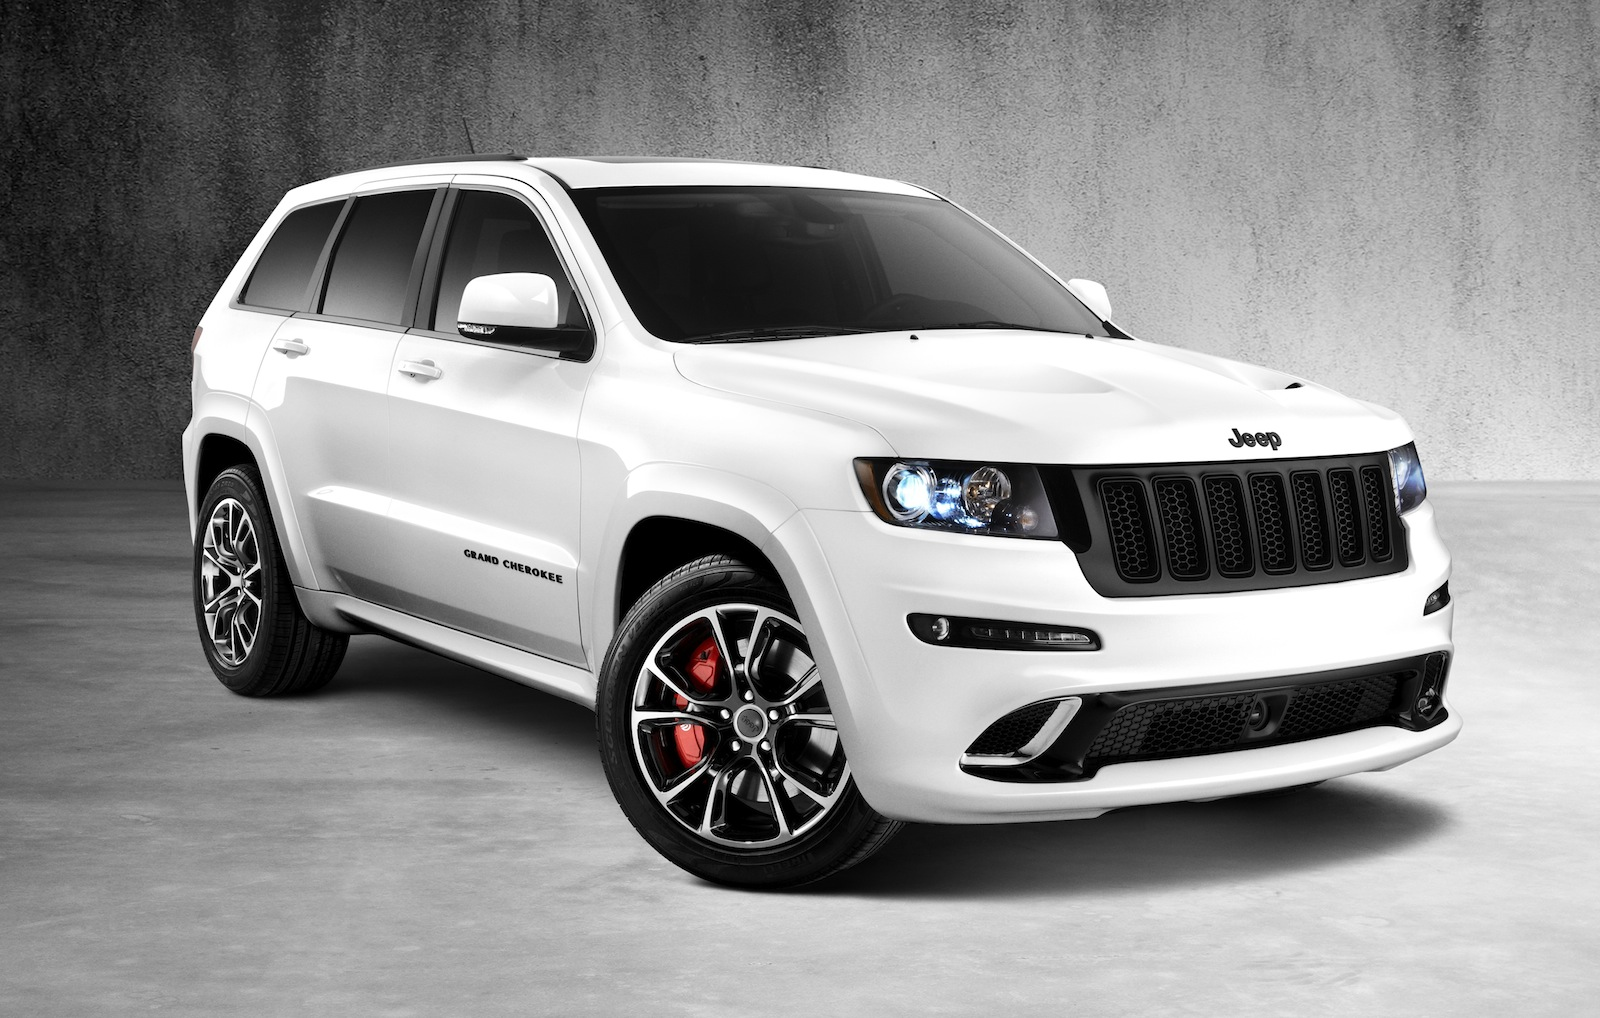 jeep grand cherokee srt8 alpine, vapour special editions for